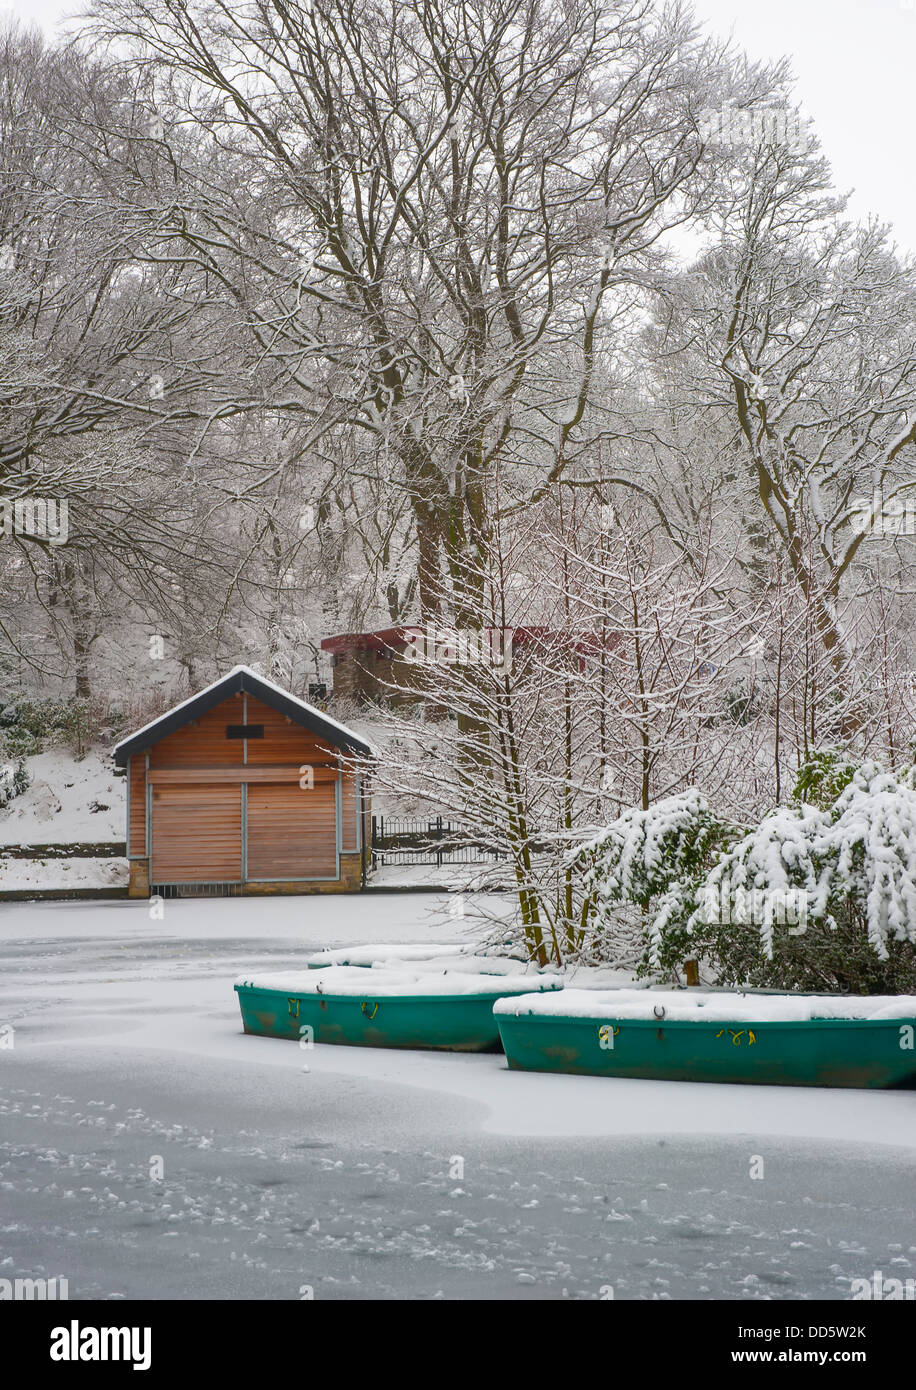 snow covered rowing boats on the boating lake at SHibden Park in Halifax,Calderdale,West yorkshire - Stock Image